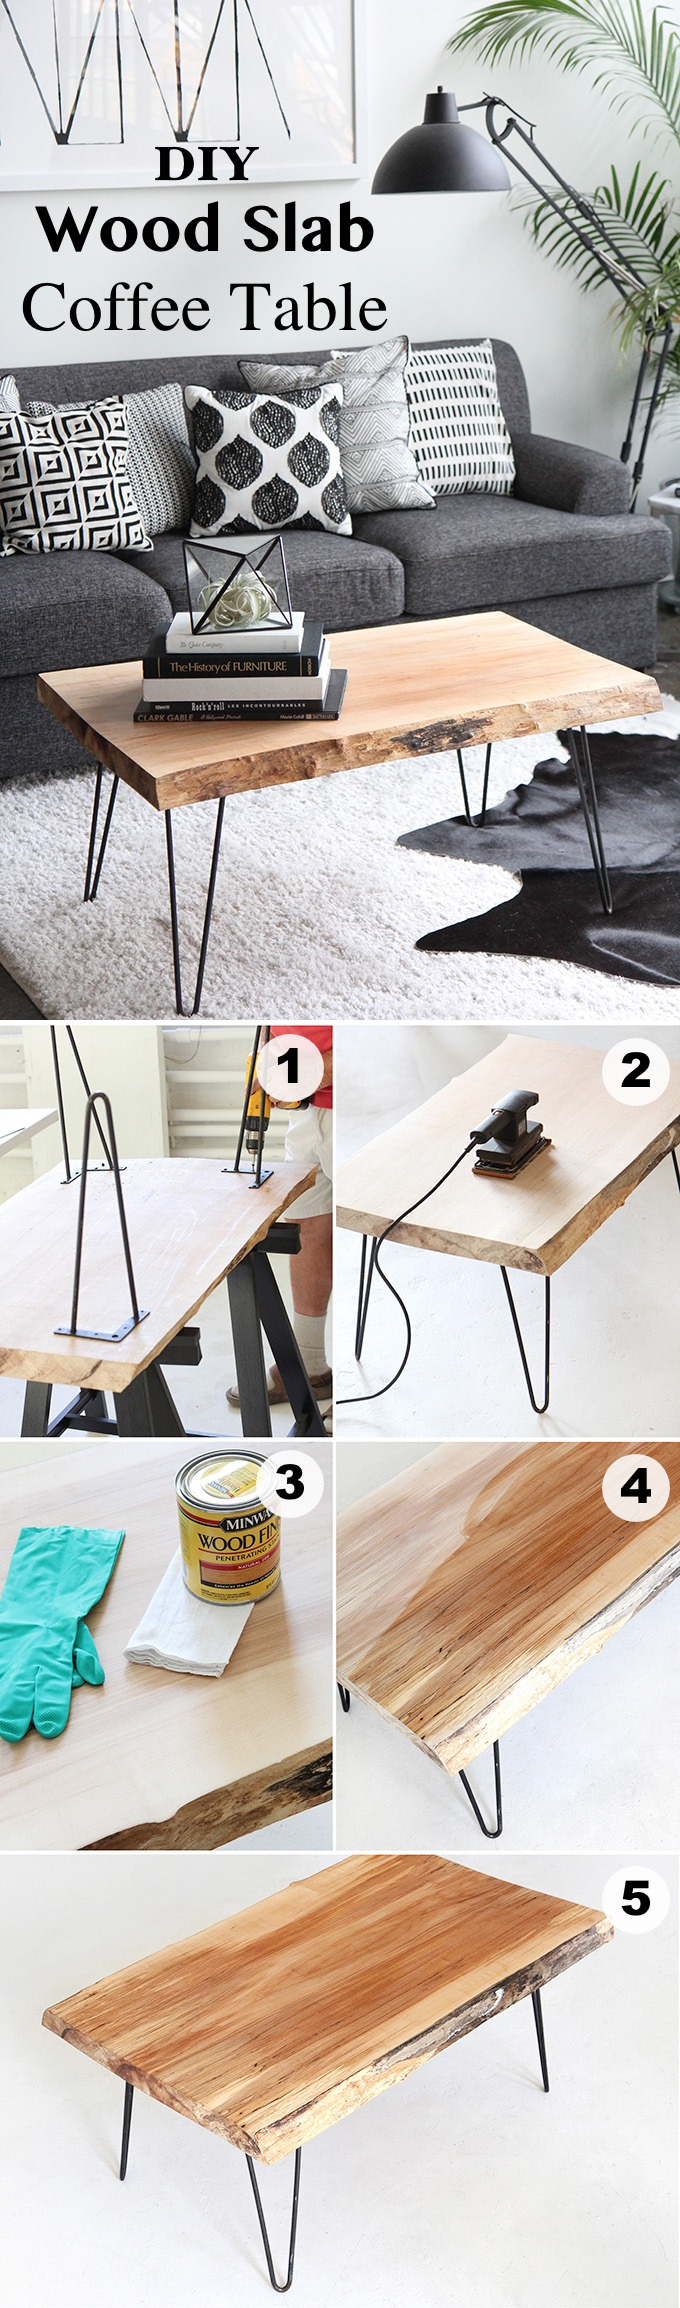 15 Creative DIY Coffee Table Ideas You Can Build Yourself Homelovr